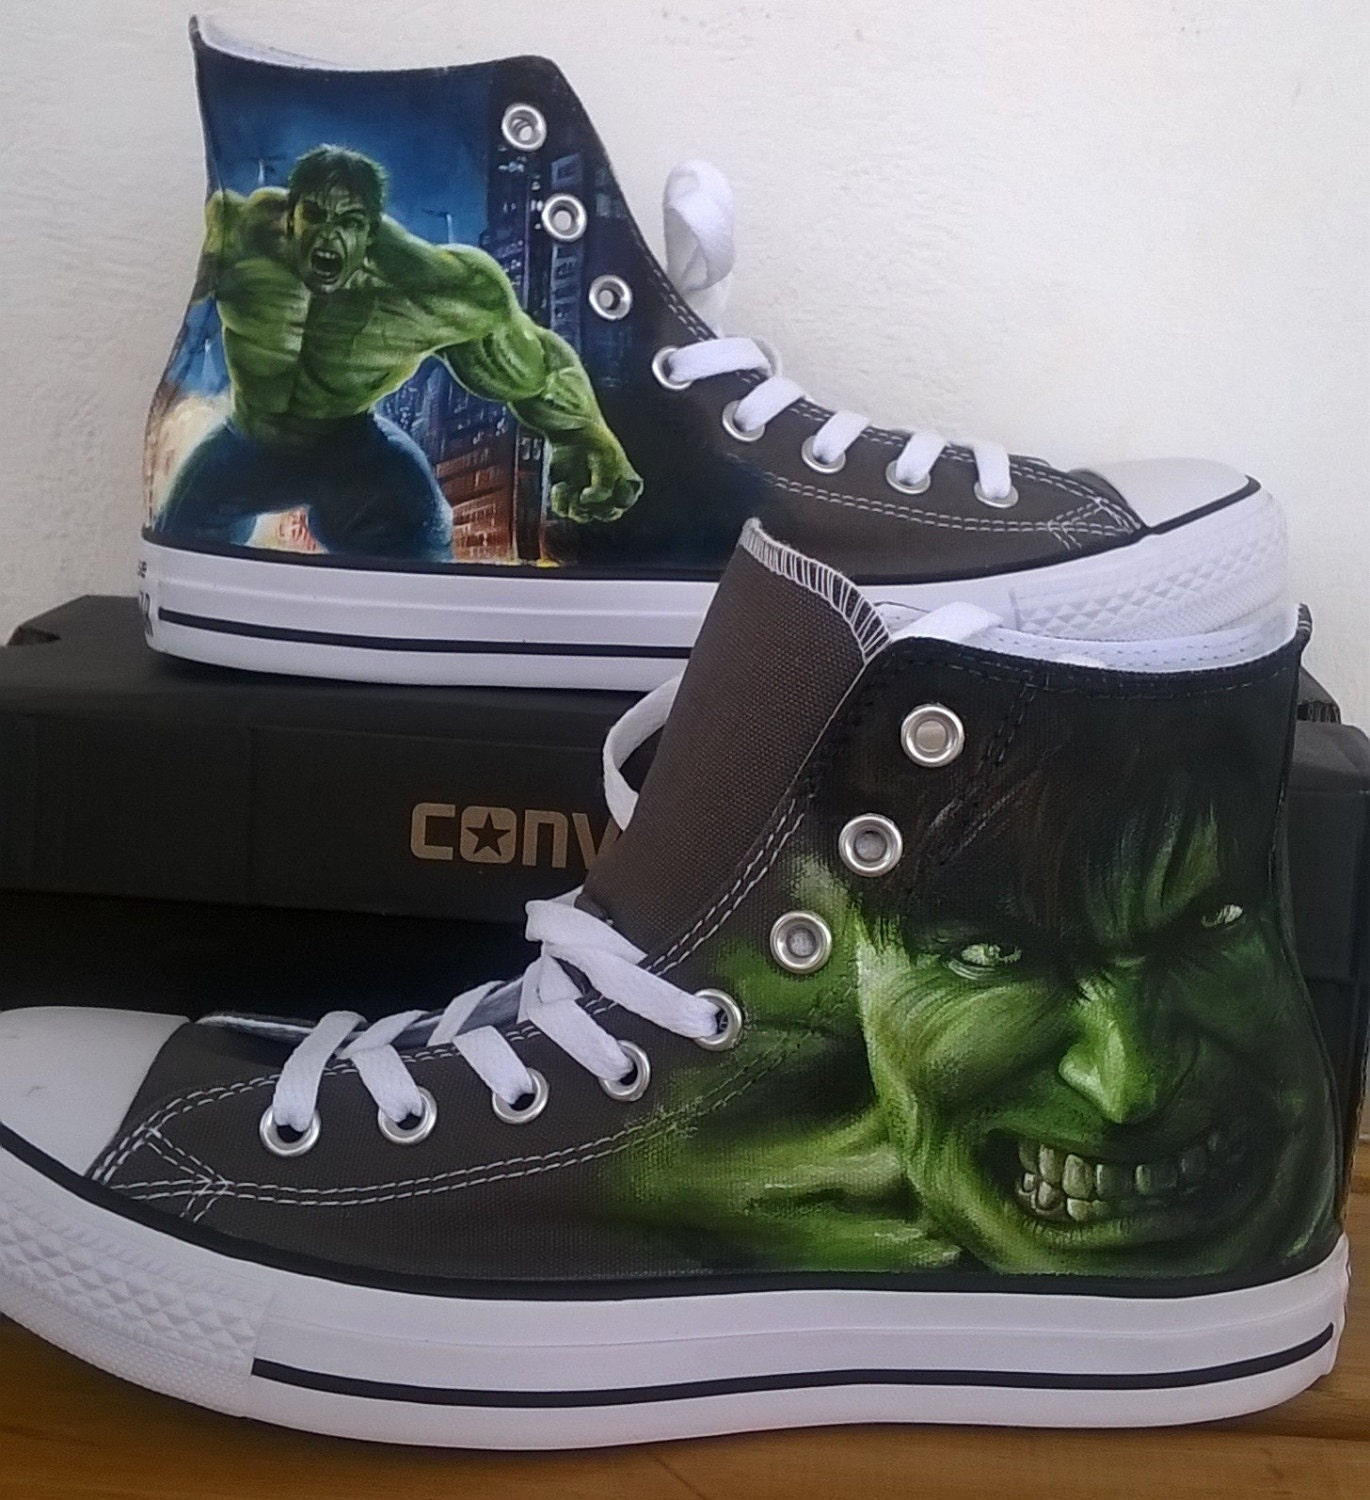 The Hulk hand painted Converse shoessuperhero Marvel shoes